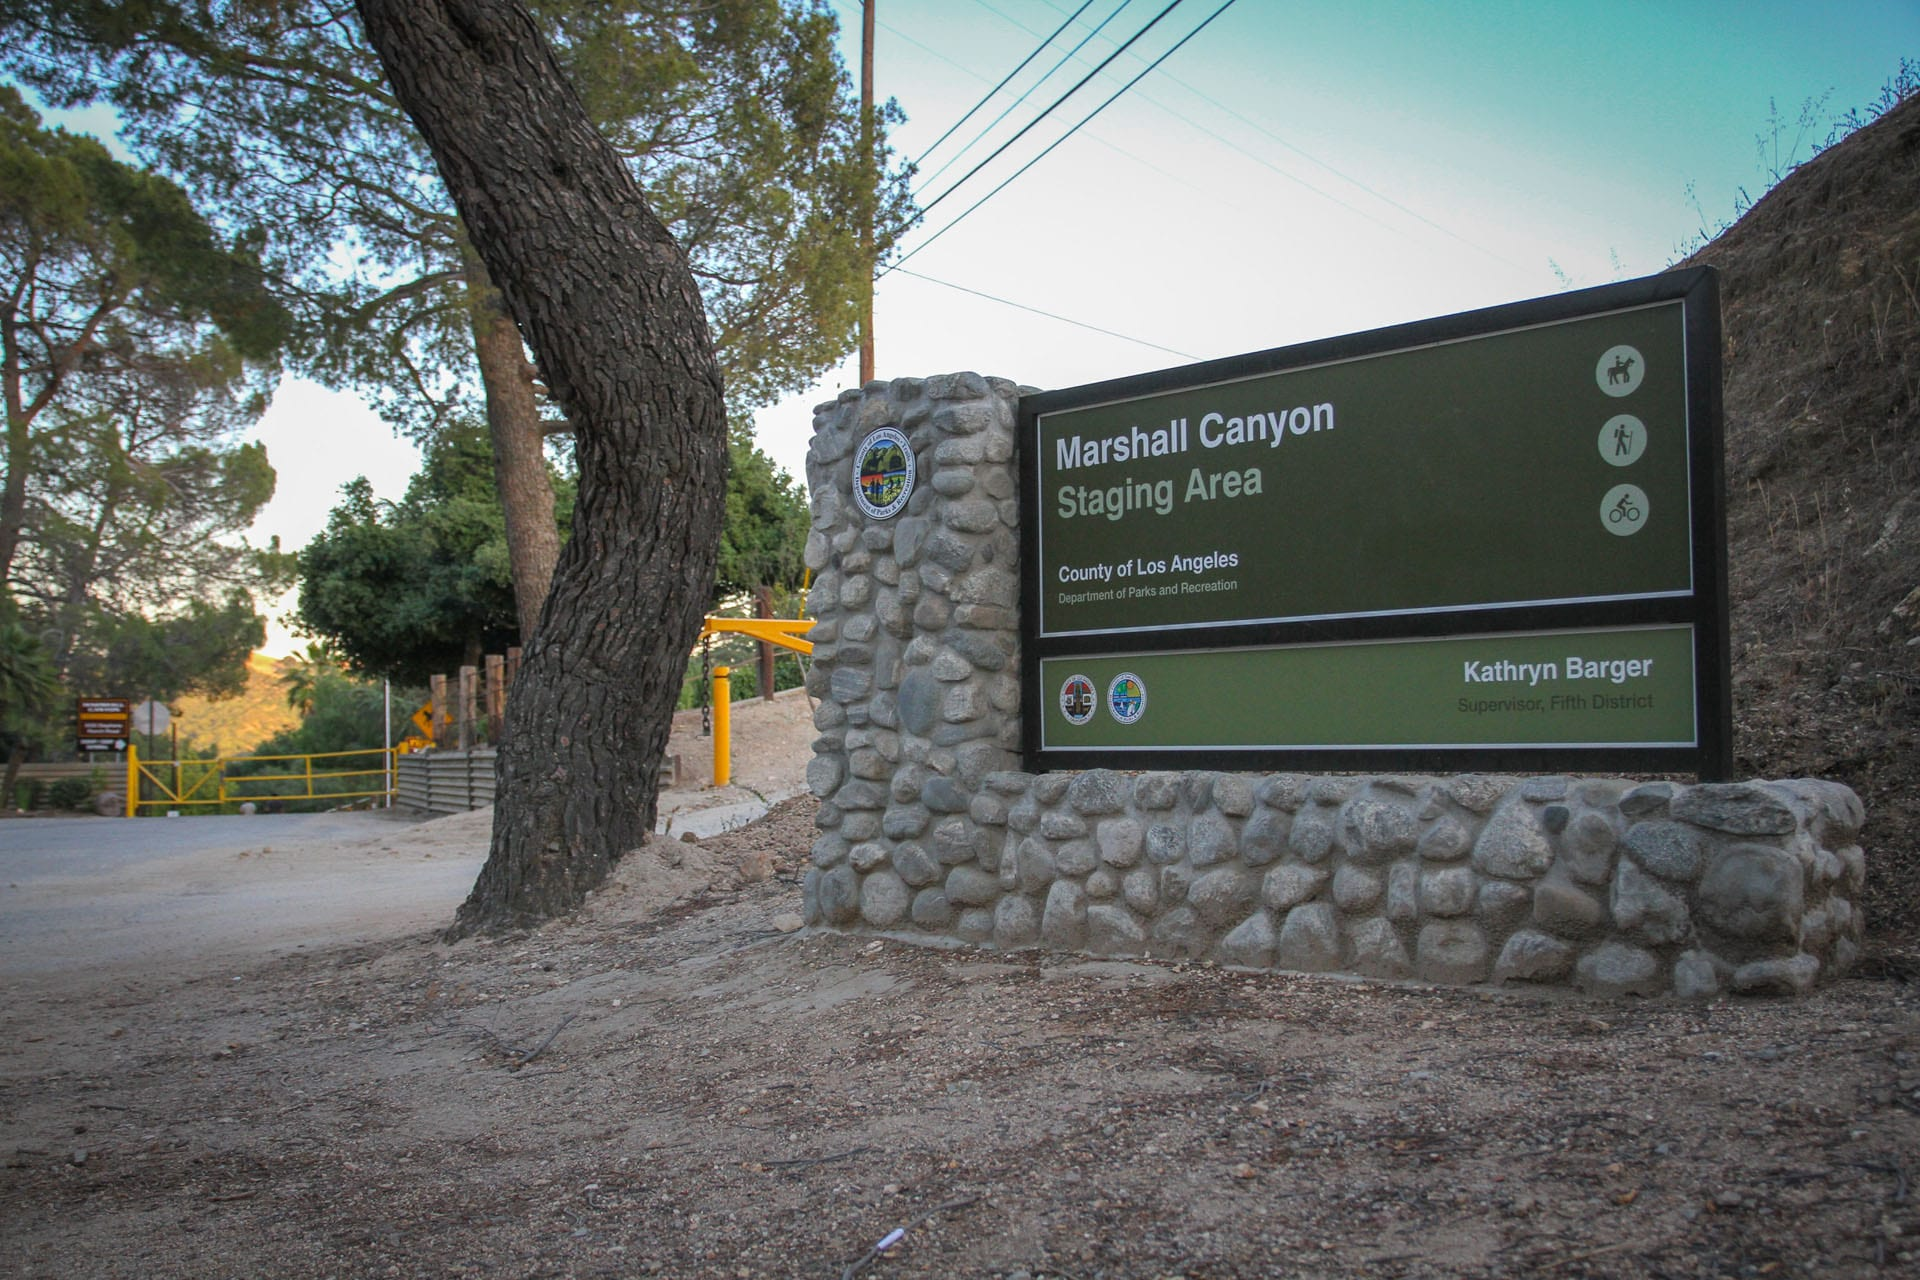 Marshall Canyon Staging Area sign